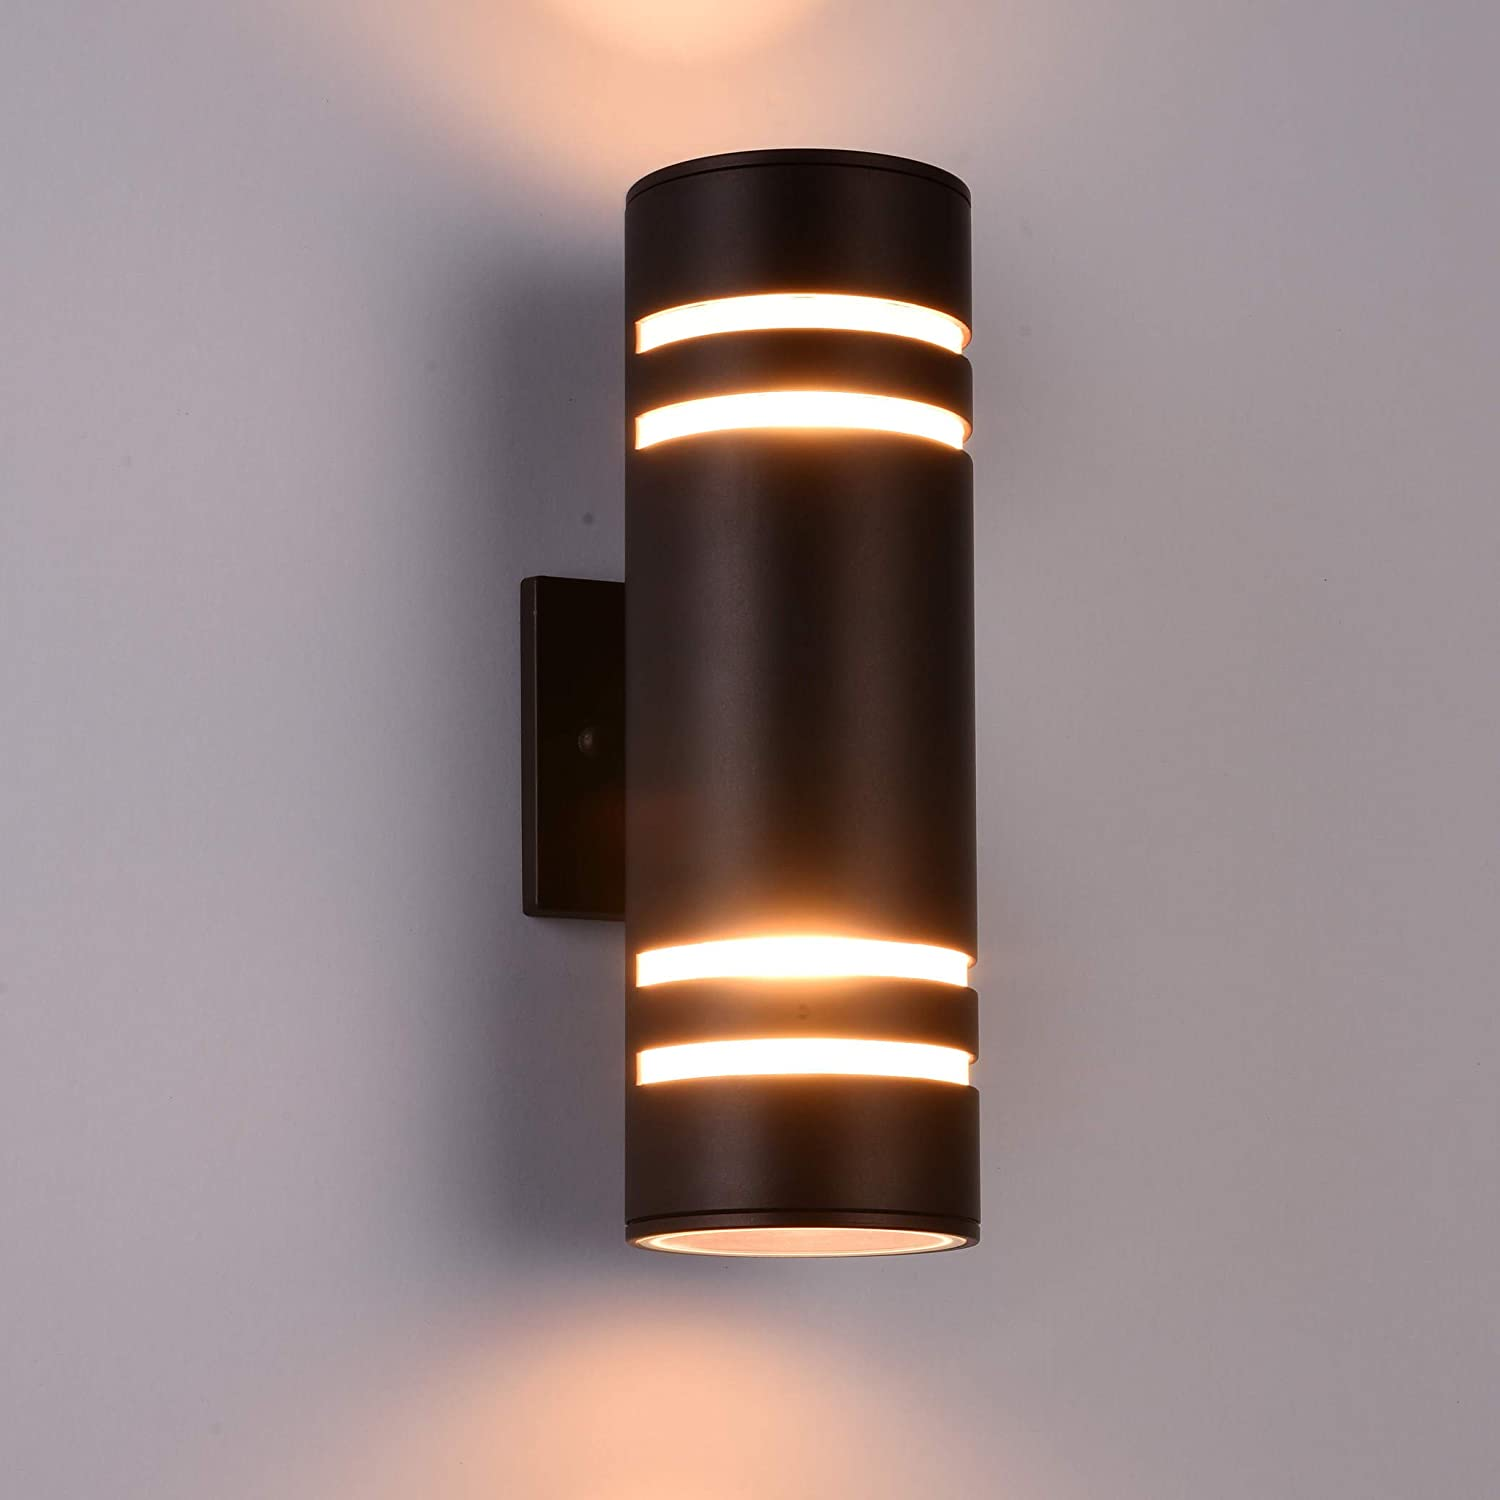 Outdoor wall light fixture aluminum modern wall sconce waterproof porch light for outdoor indoor use brownetl listed amazon com